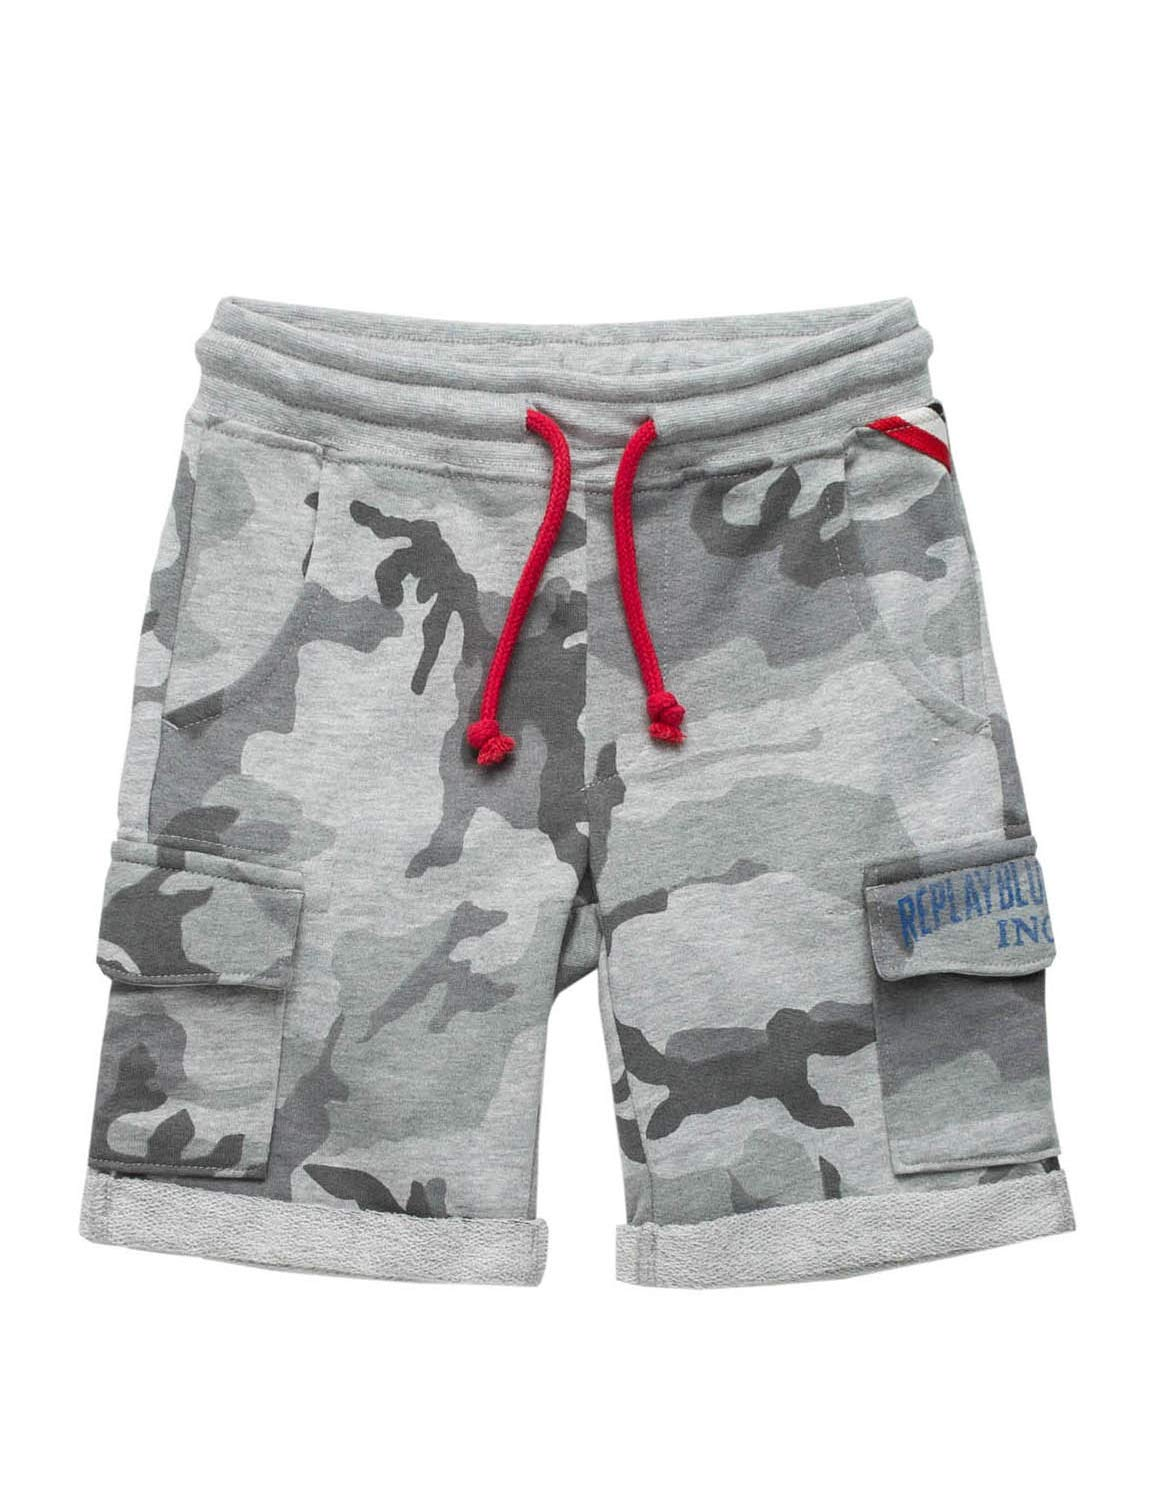 Replay Boys Kids Shorts with Camo Print Grey in Size 8 Years